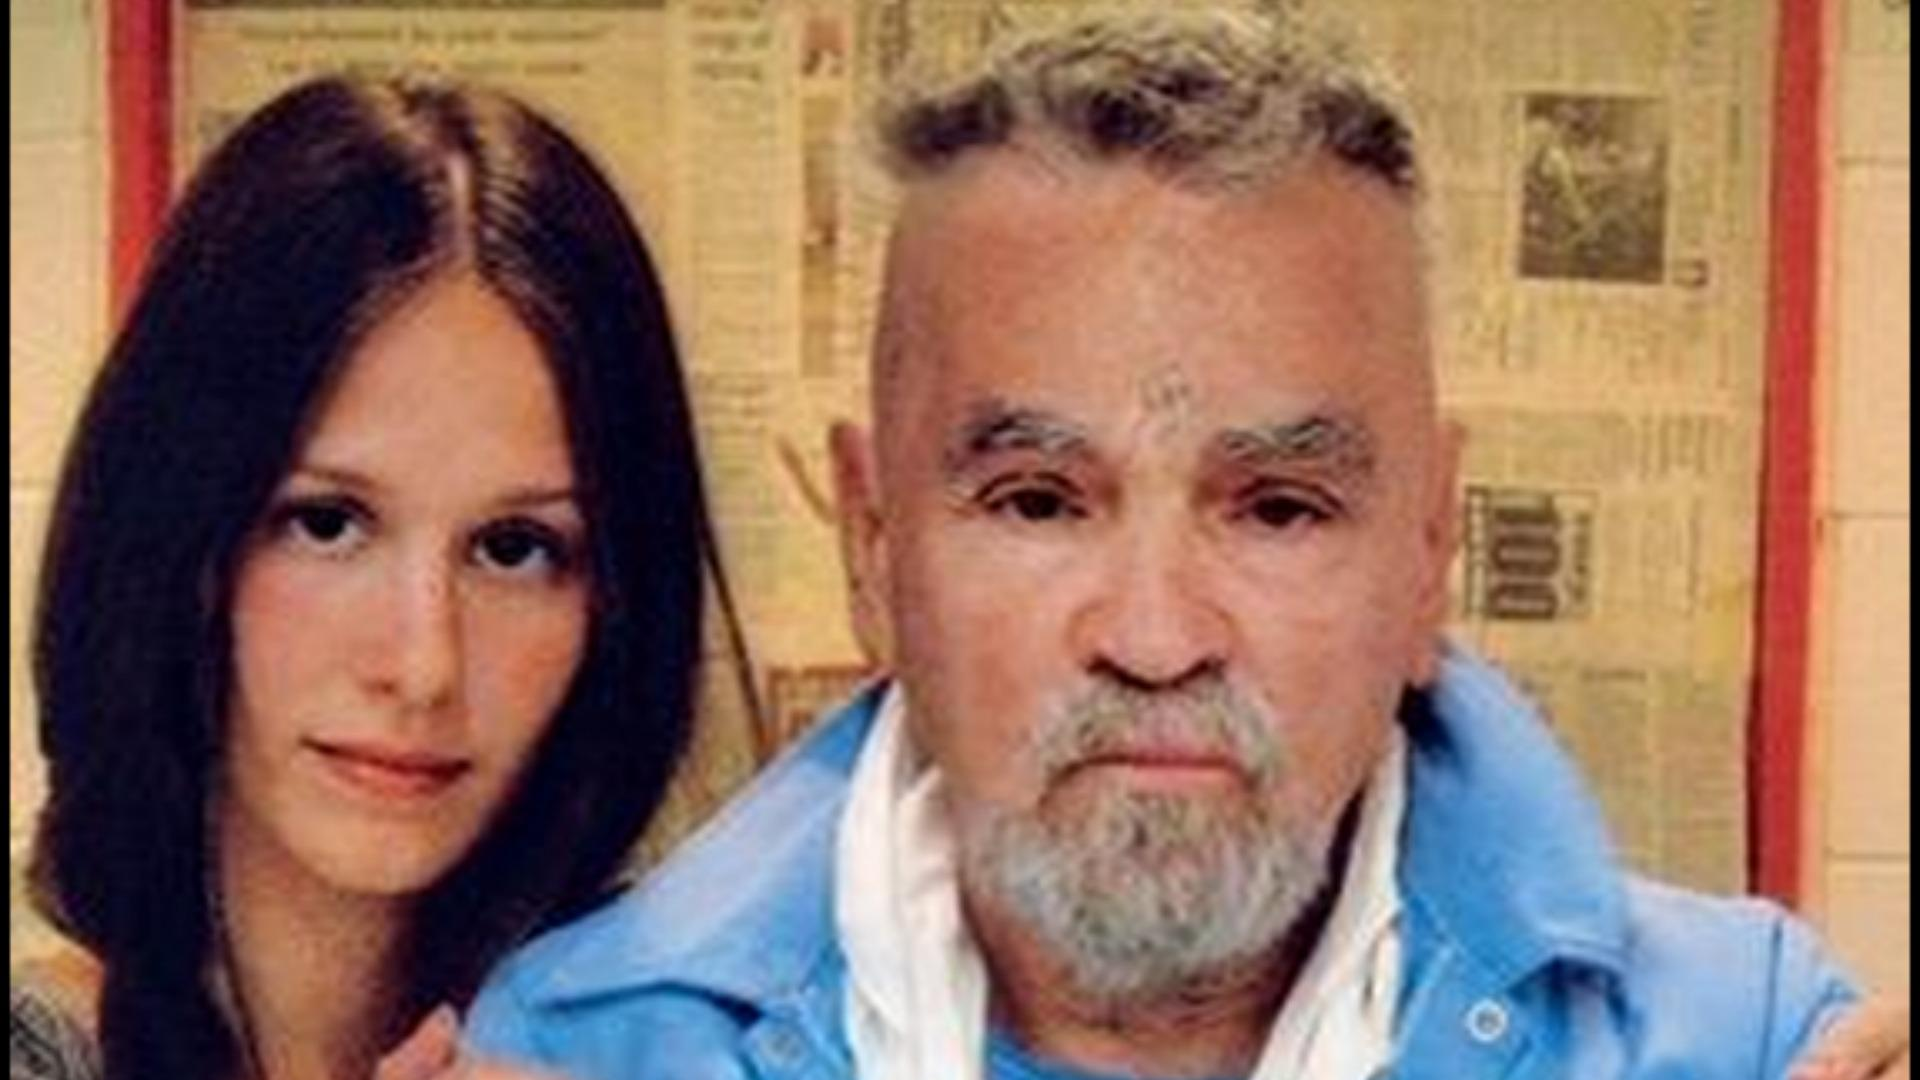 Charles Manson and fiancee